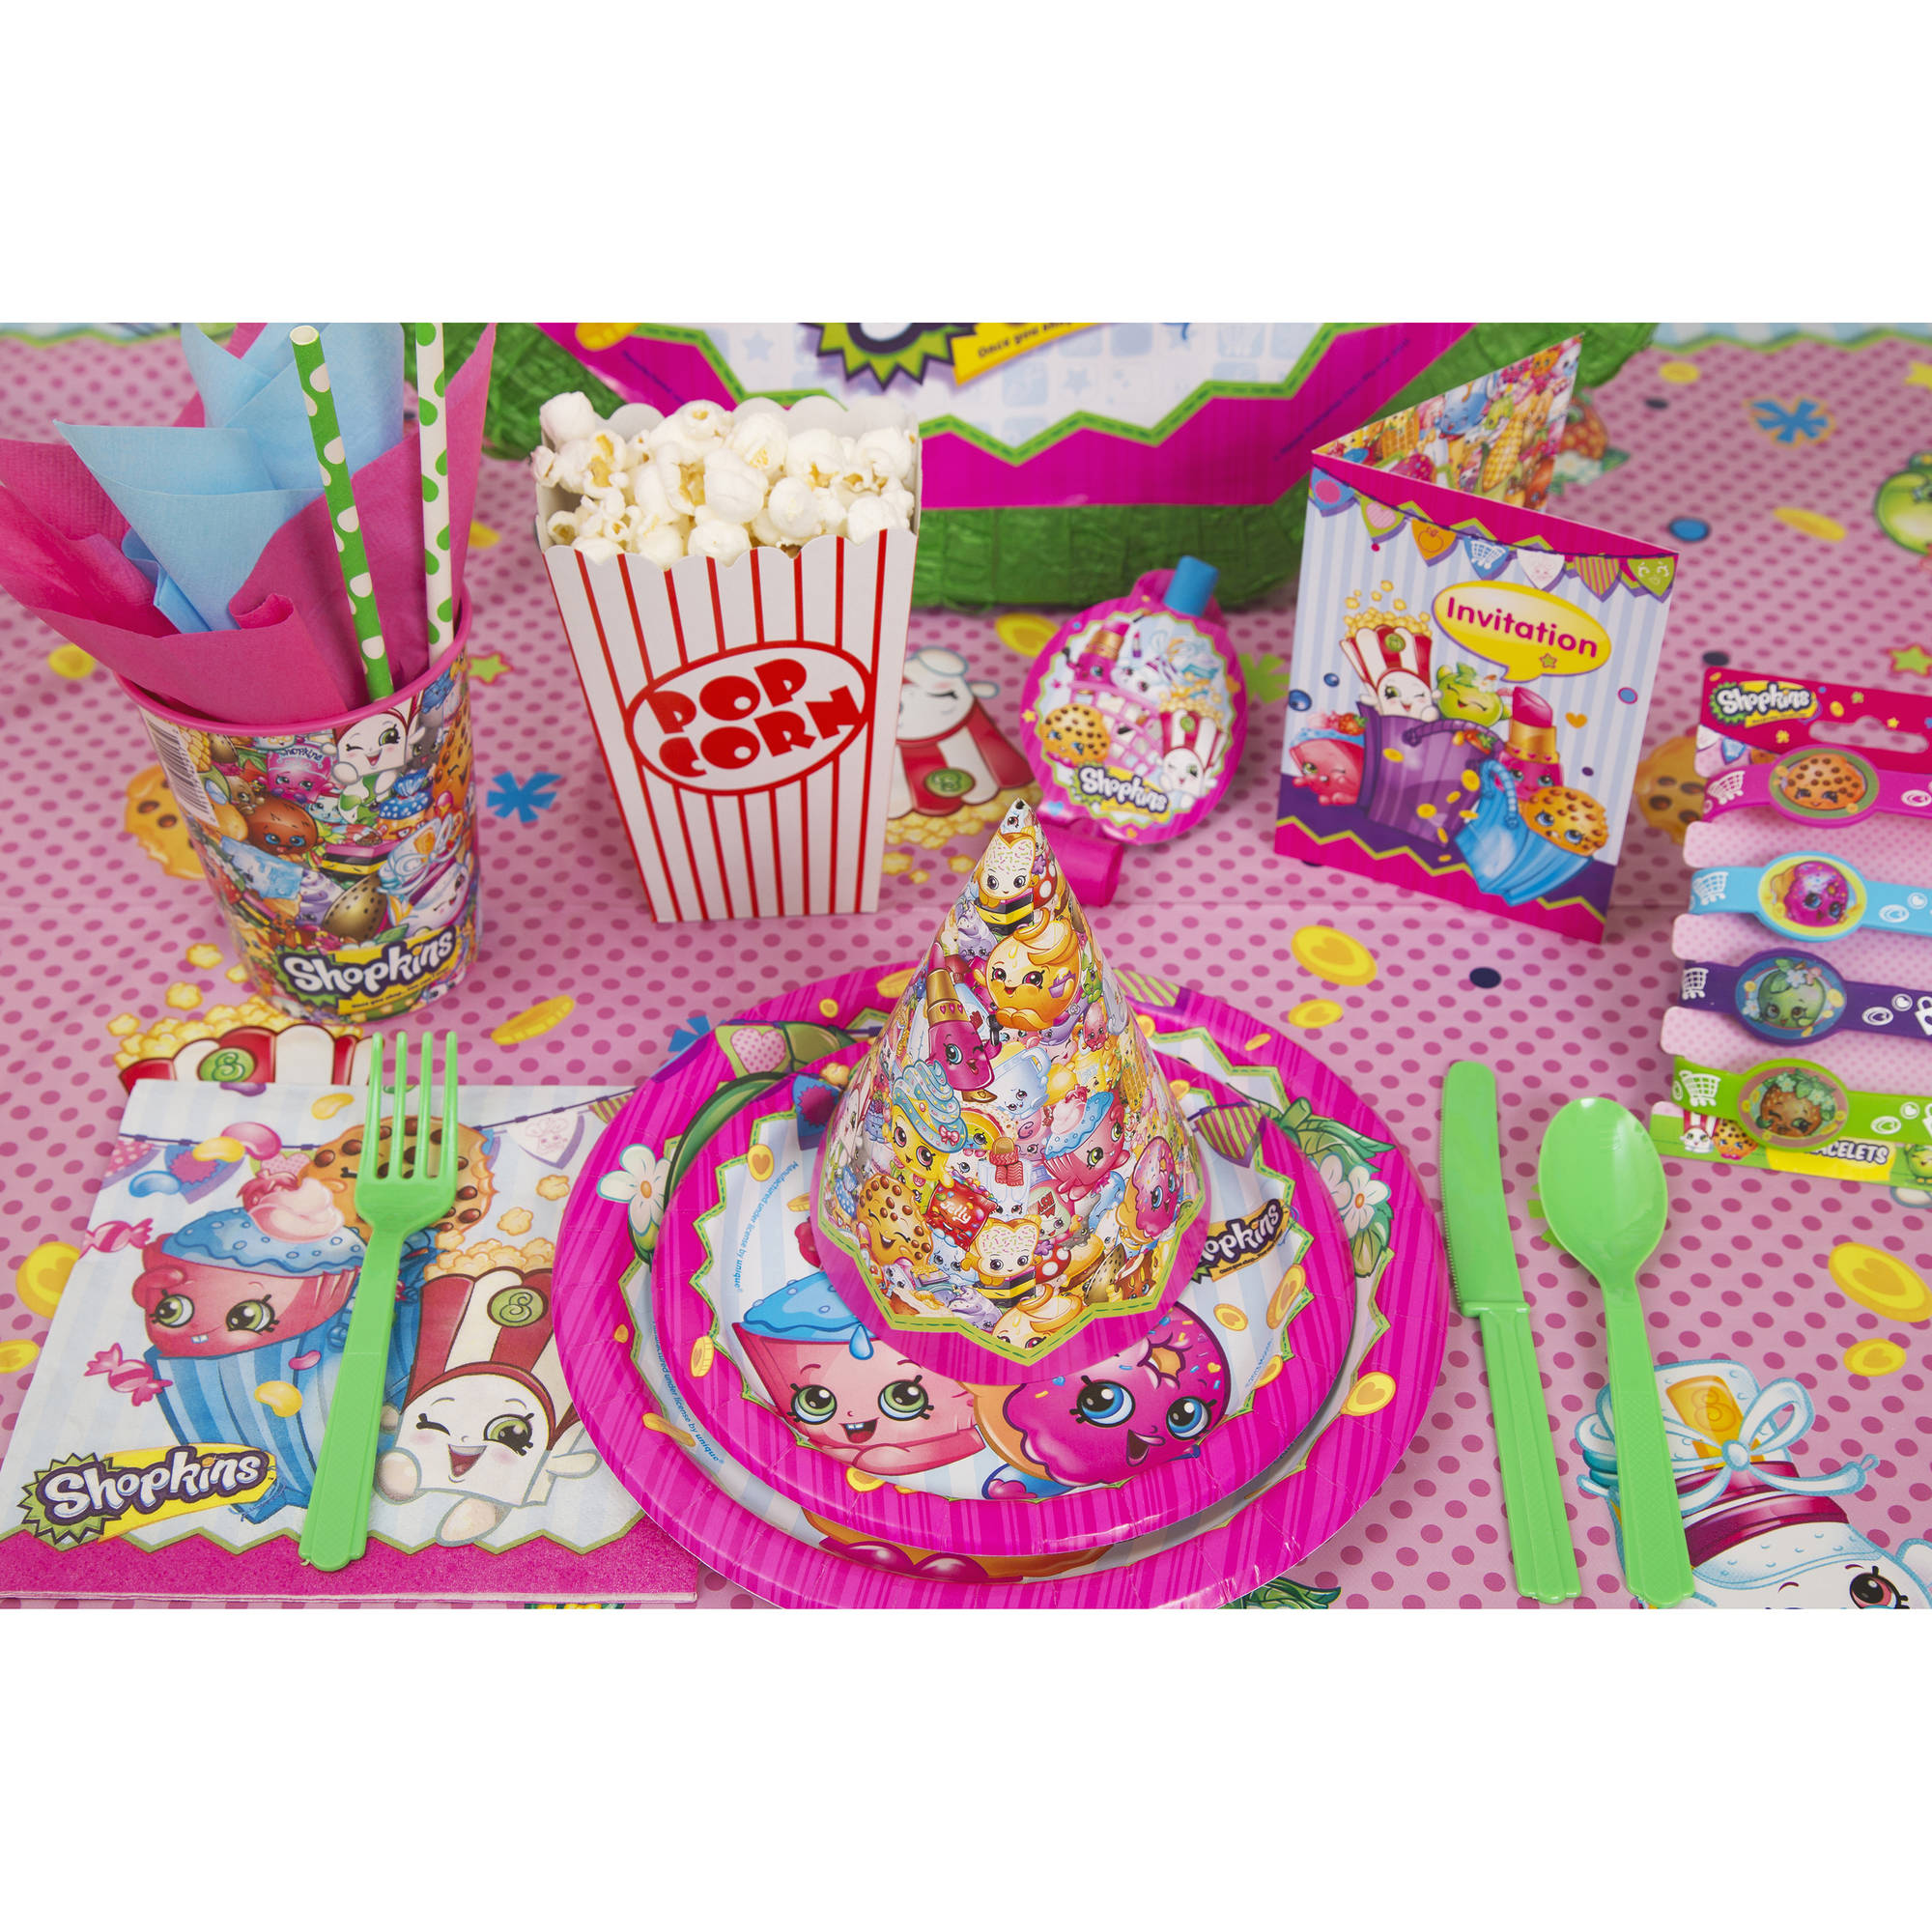 Fabulous Shopkins Cake Topper And Birthday Candles Walmart Com Walmart Com Personalised Birthday Cards Bromeletsinfo